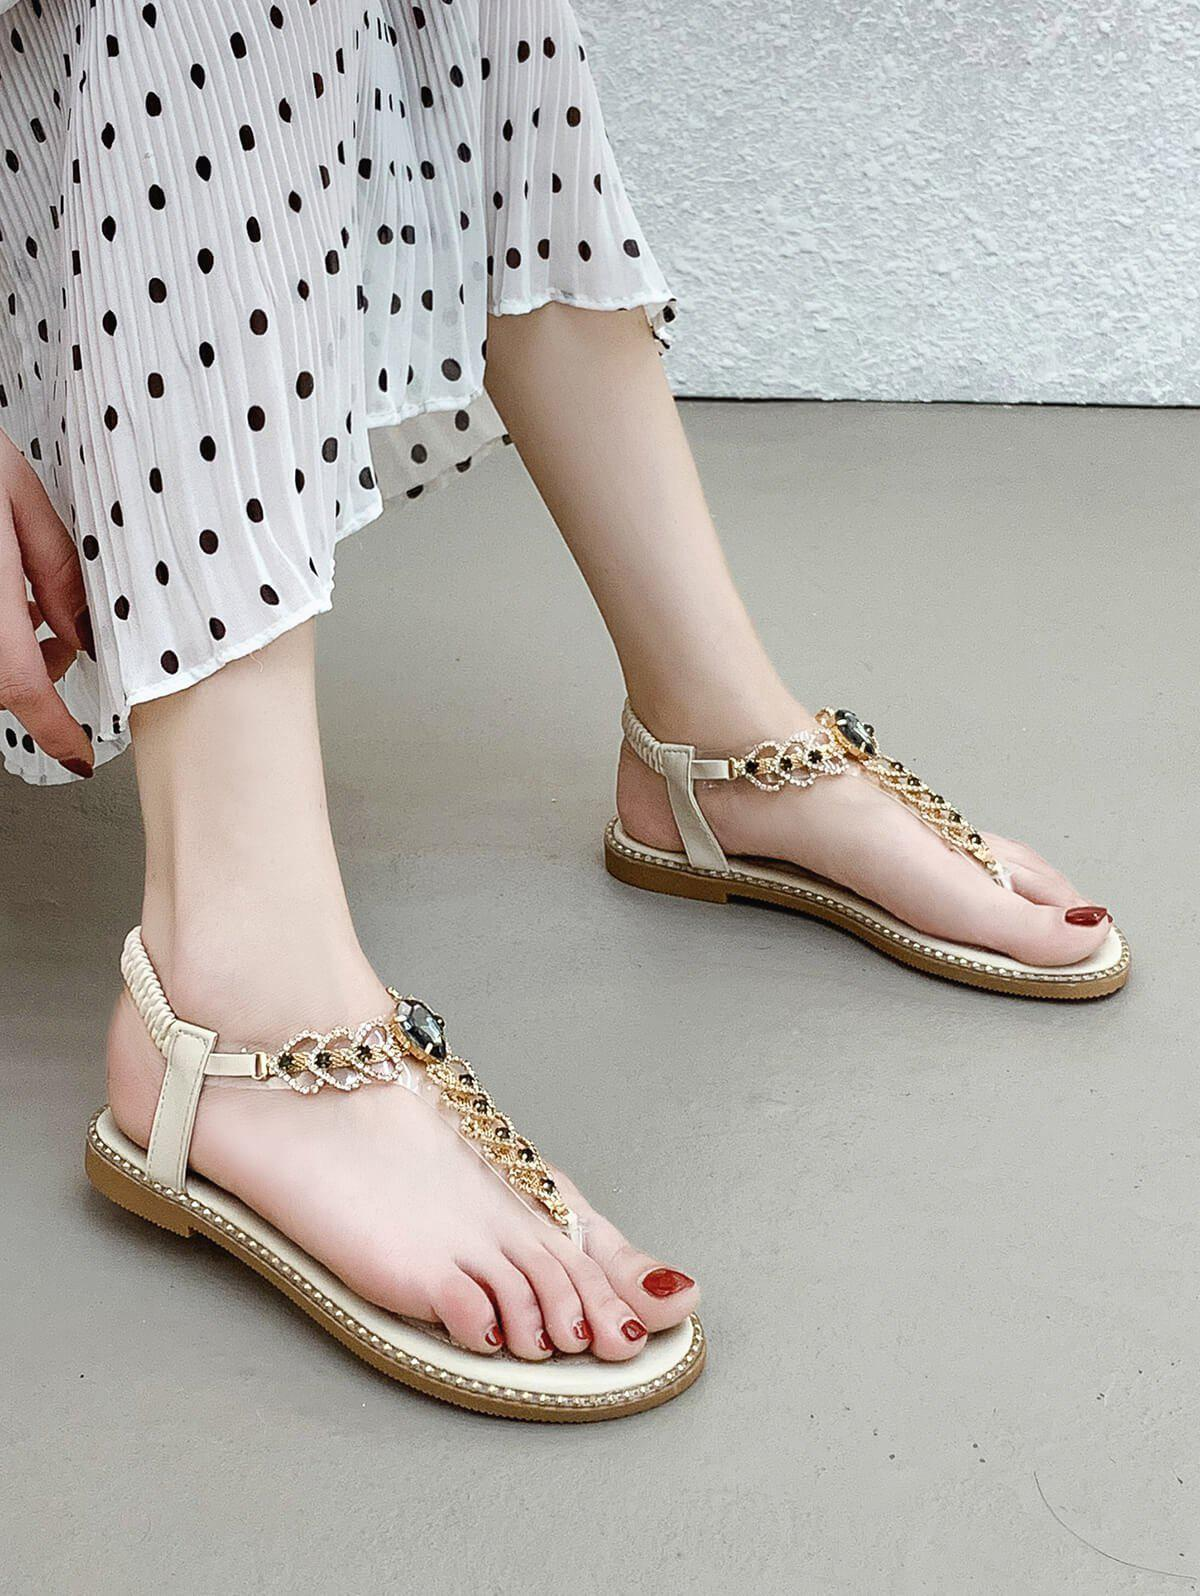 Rhinestone Heart Toe Post Flat Sandals - BEIGE EU 38